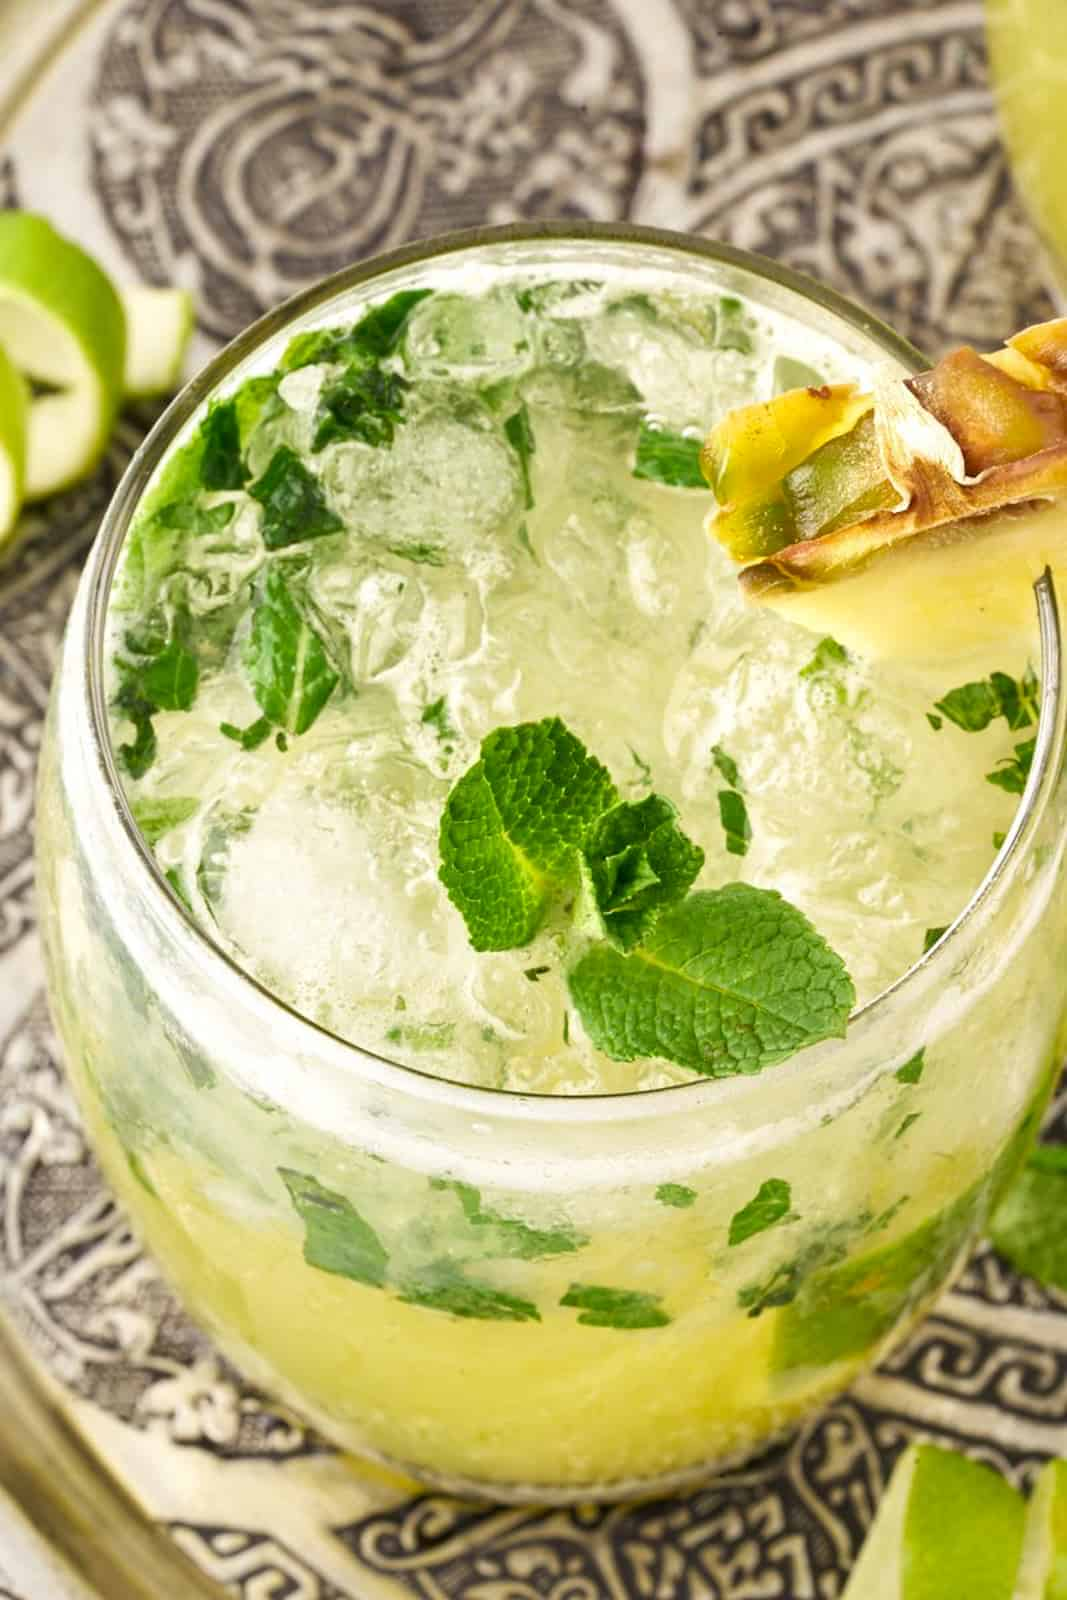 Overhead of one mojito in glass showing mint